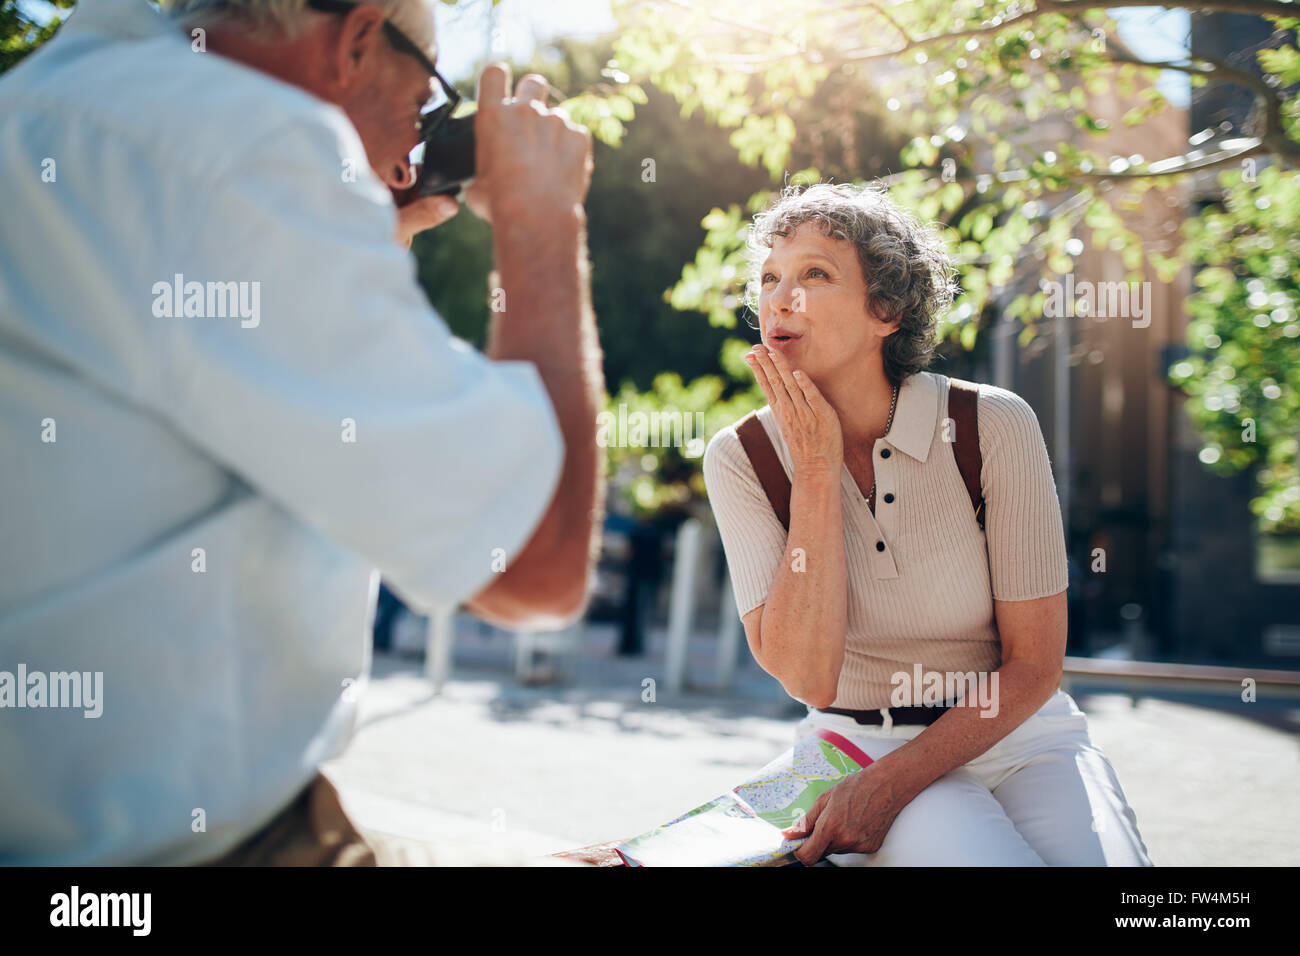 Beautiful senior woman blowing a kiss to camera while sitting outdoors on a bench in the city. Woman being photographed - Stock Image